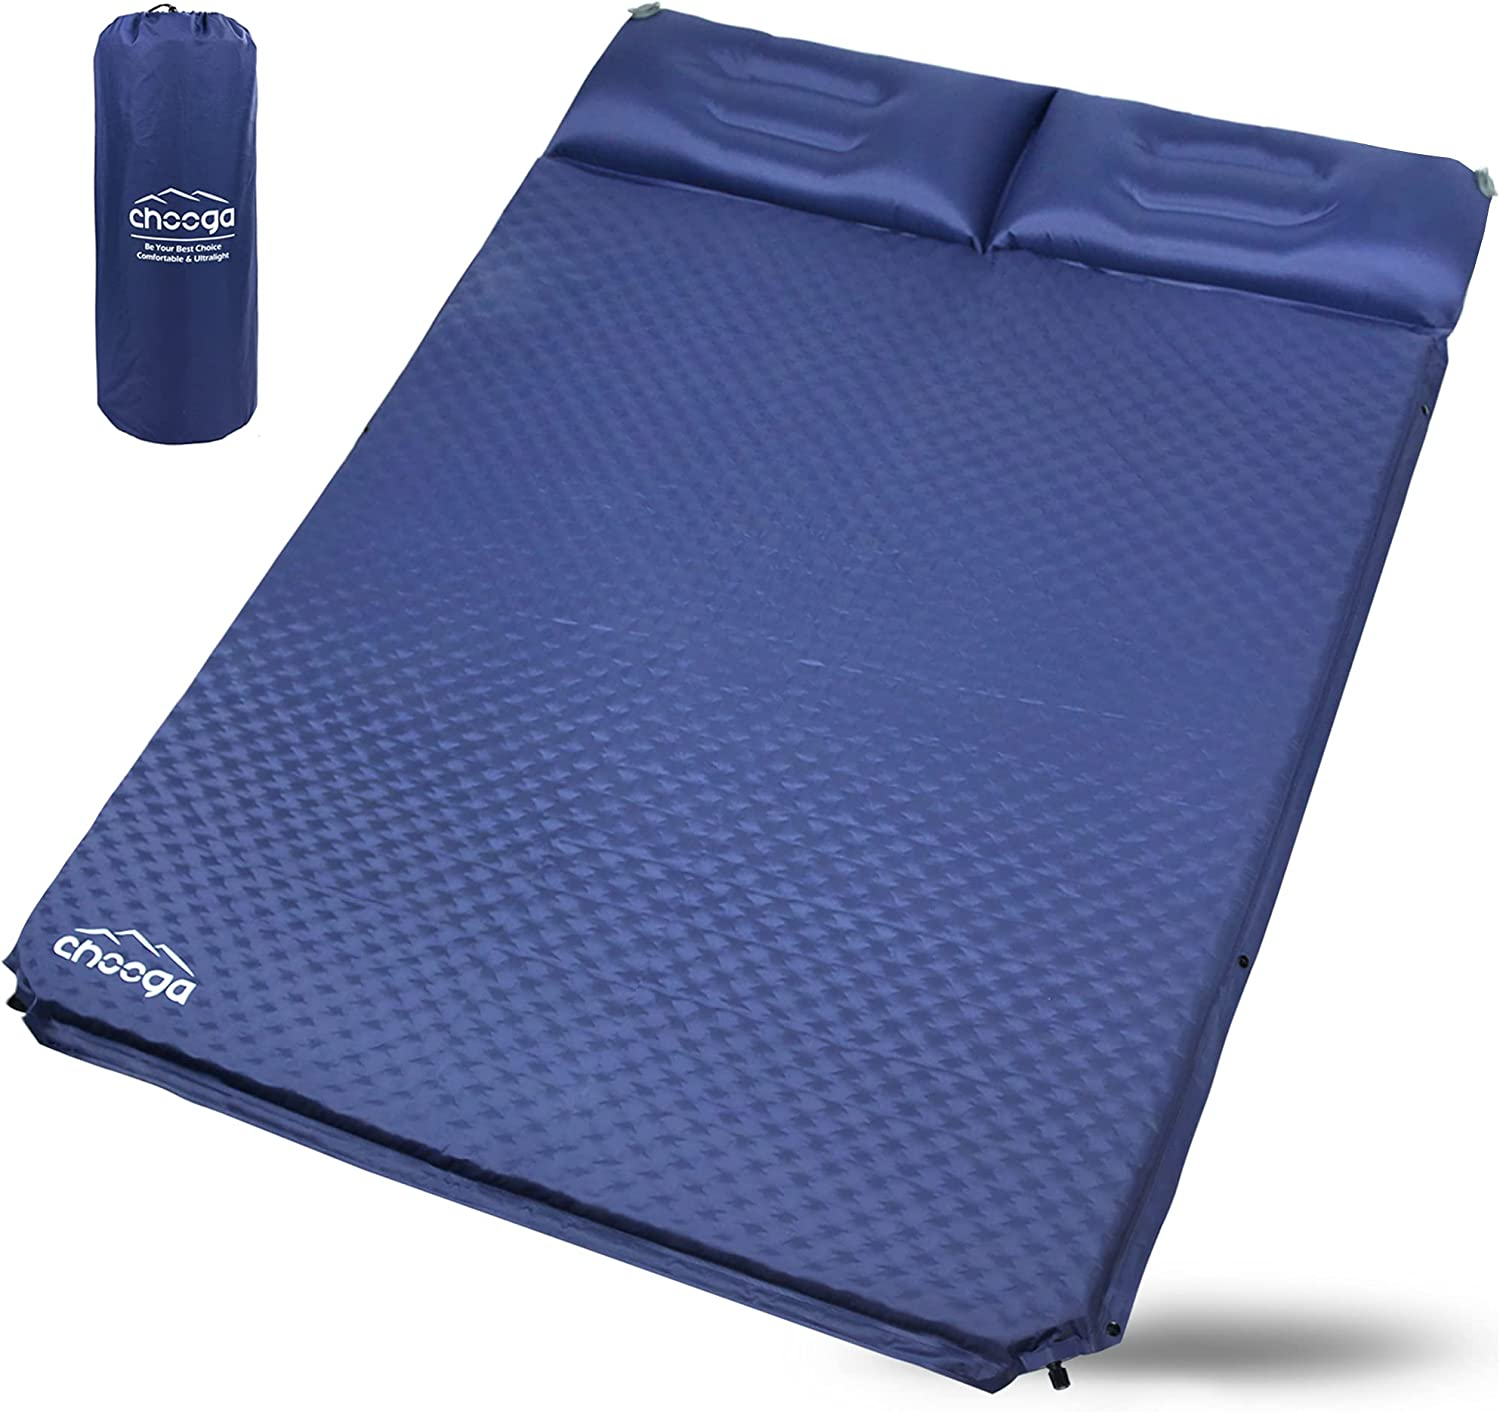 service Chooga Double Sleeping 5 ☆ very popular Pad for Camping 2 Person Self Comfortable